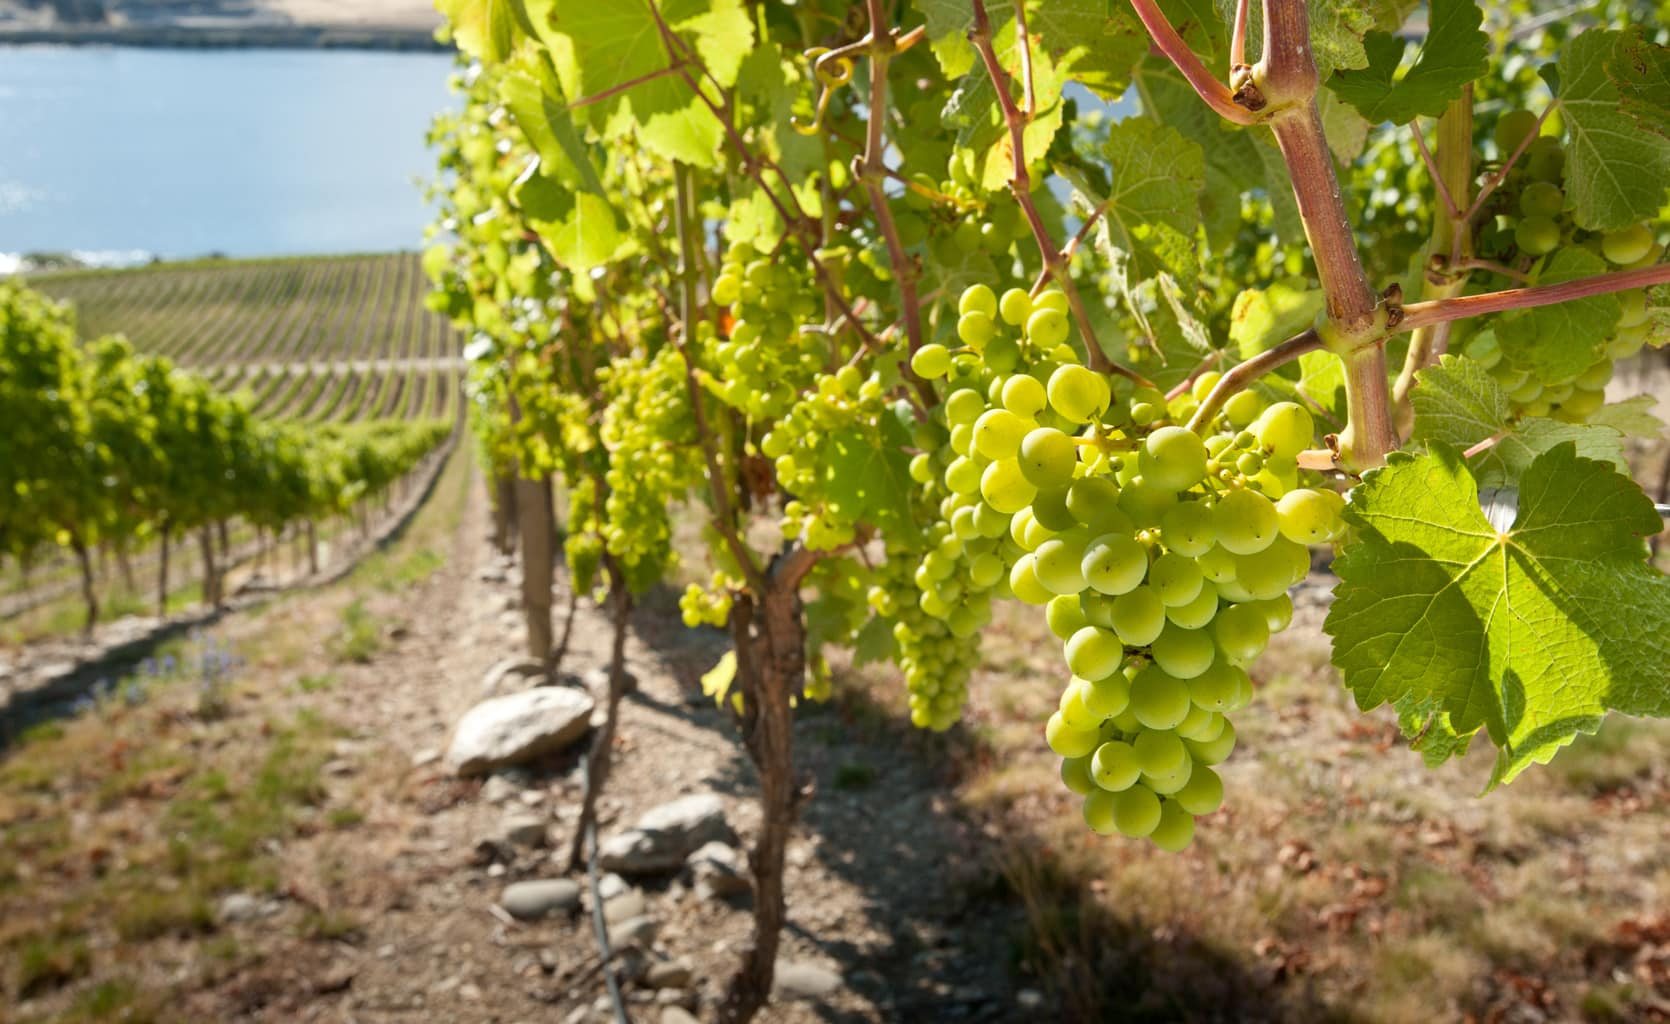 Development of Grape Yield Analyser continues to progress